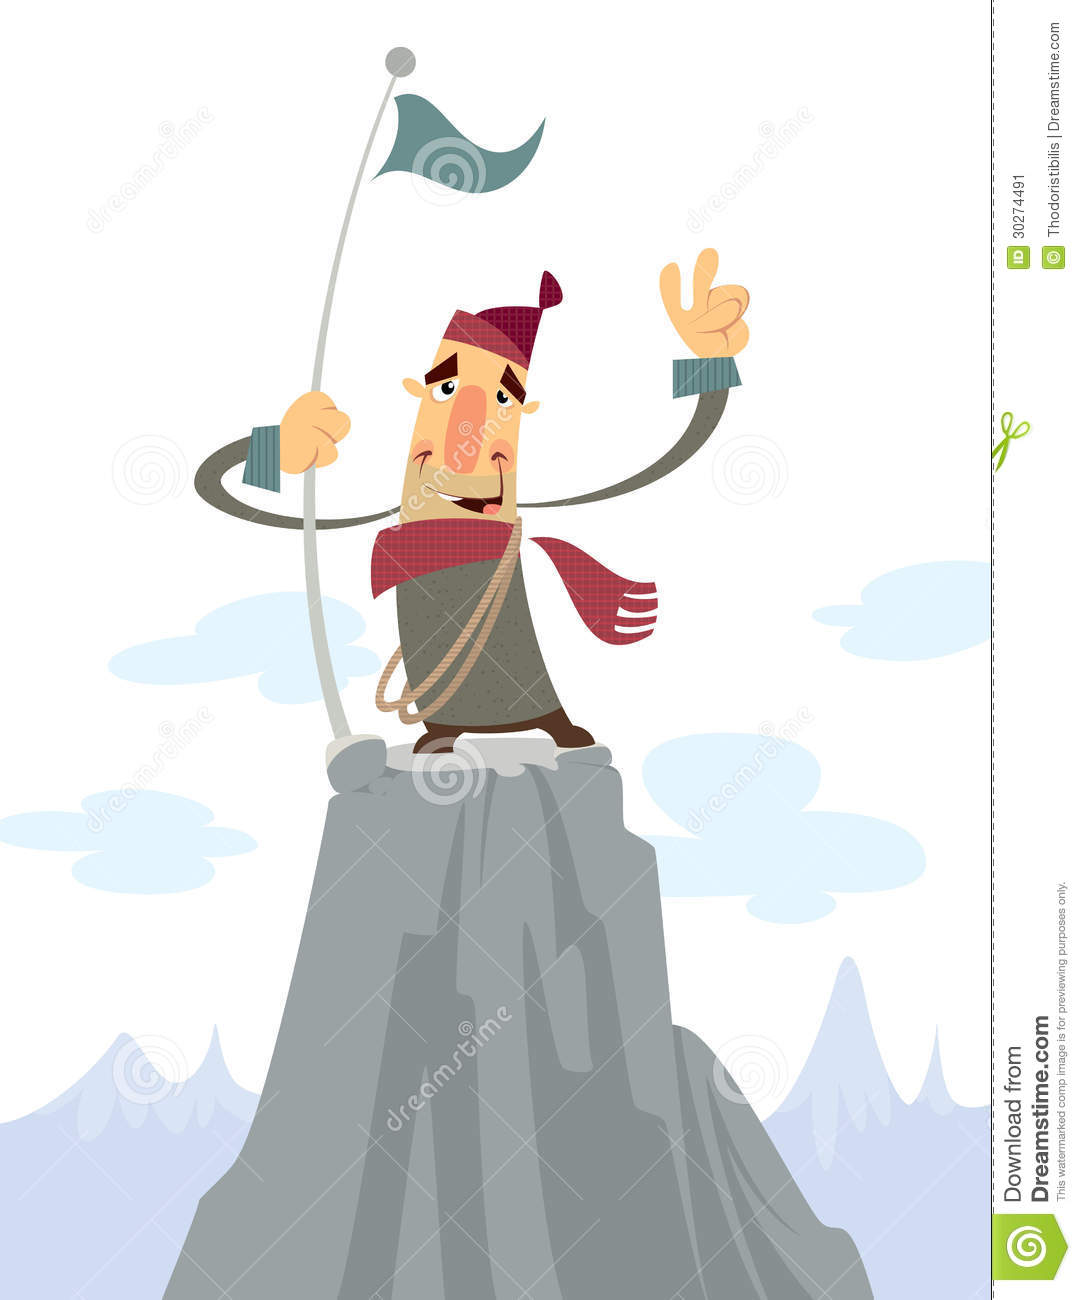 A Man On The Top Of A Mountain Stock Image - Image: 30274491